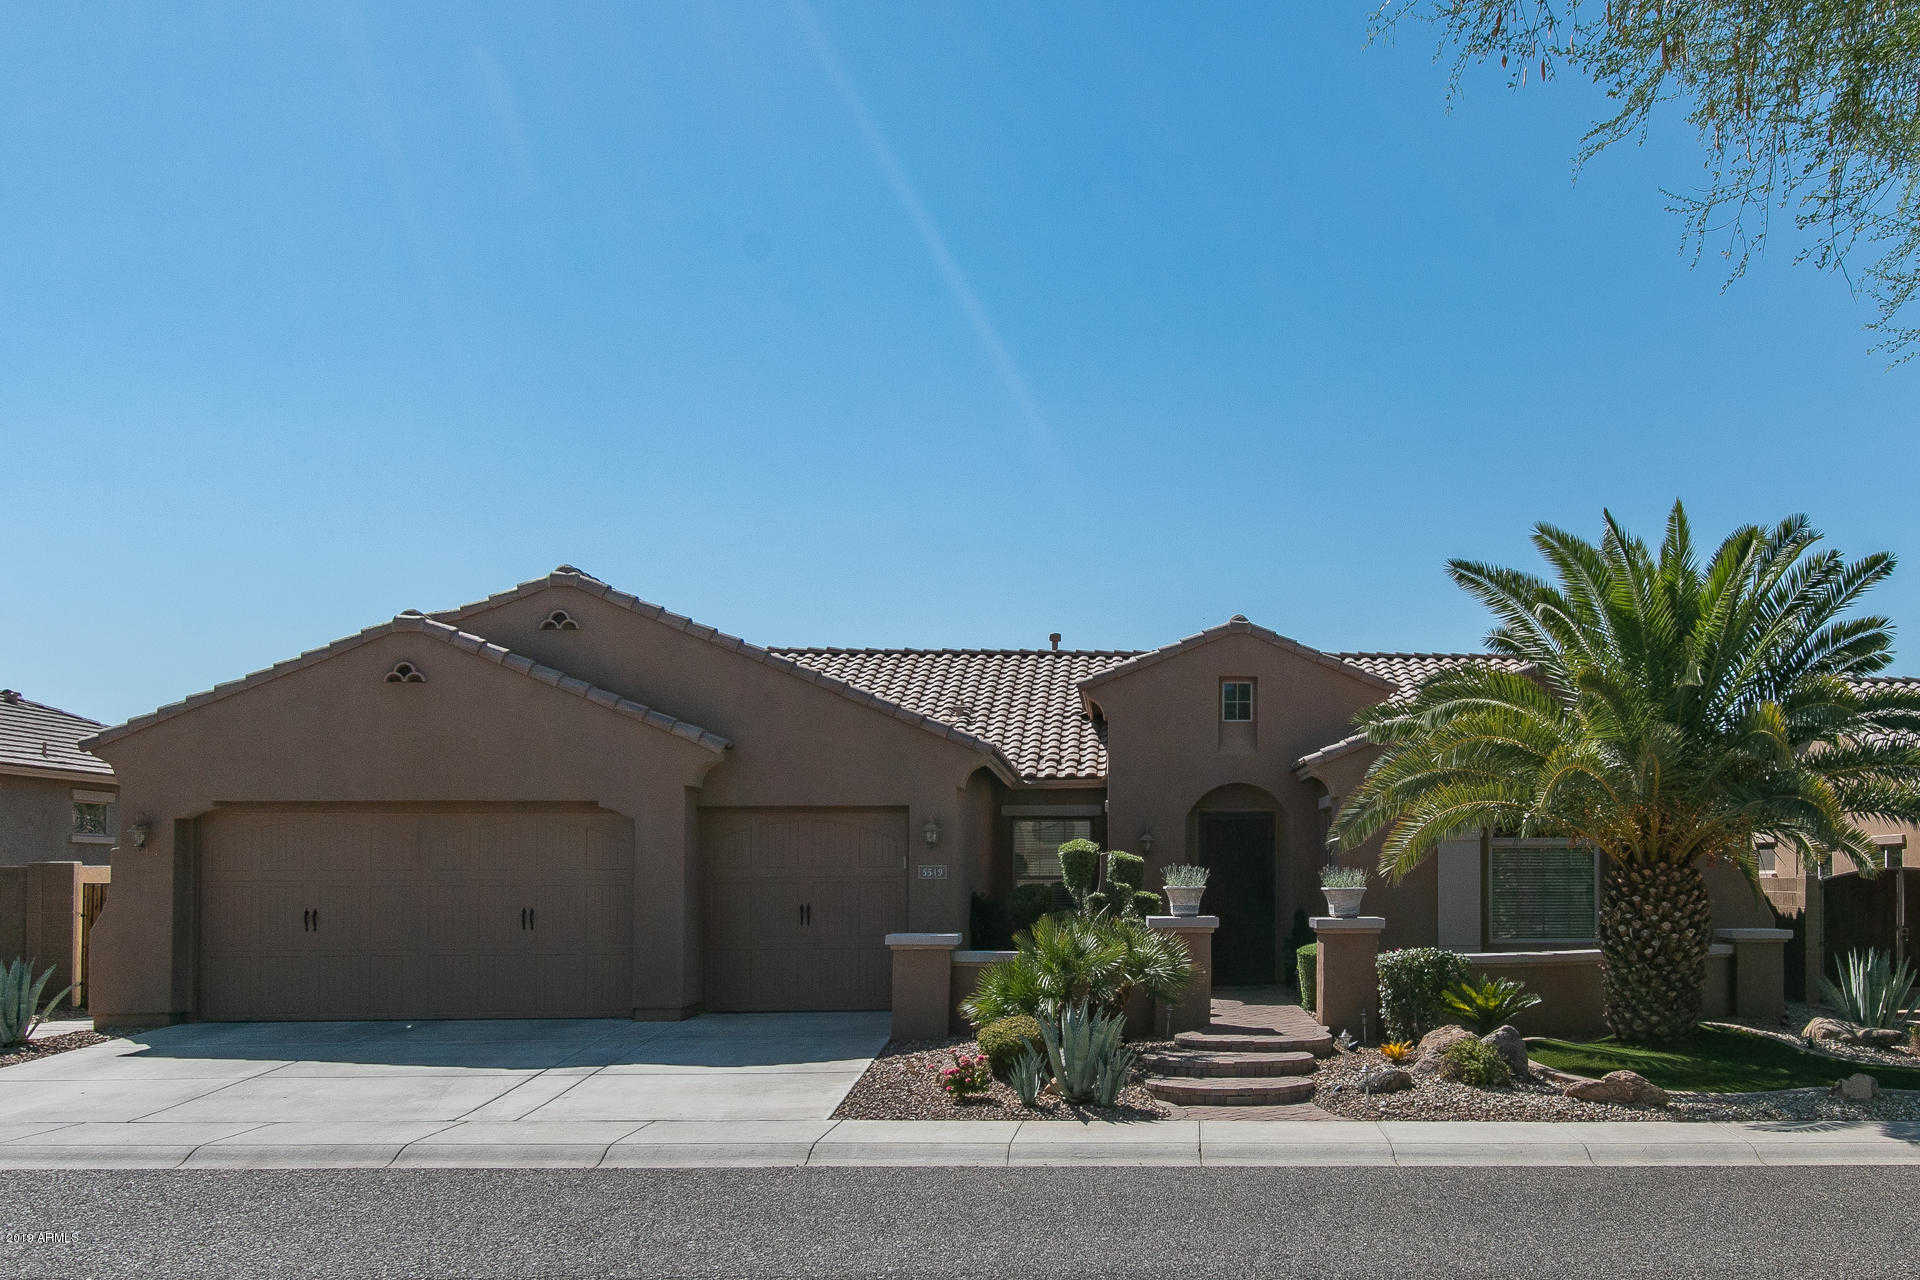 $515,000 - 4Br/4Ba - Home for Sale in Stetson Valley Parcels 5 13 14, Phoenix